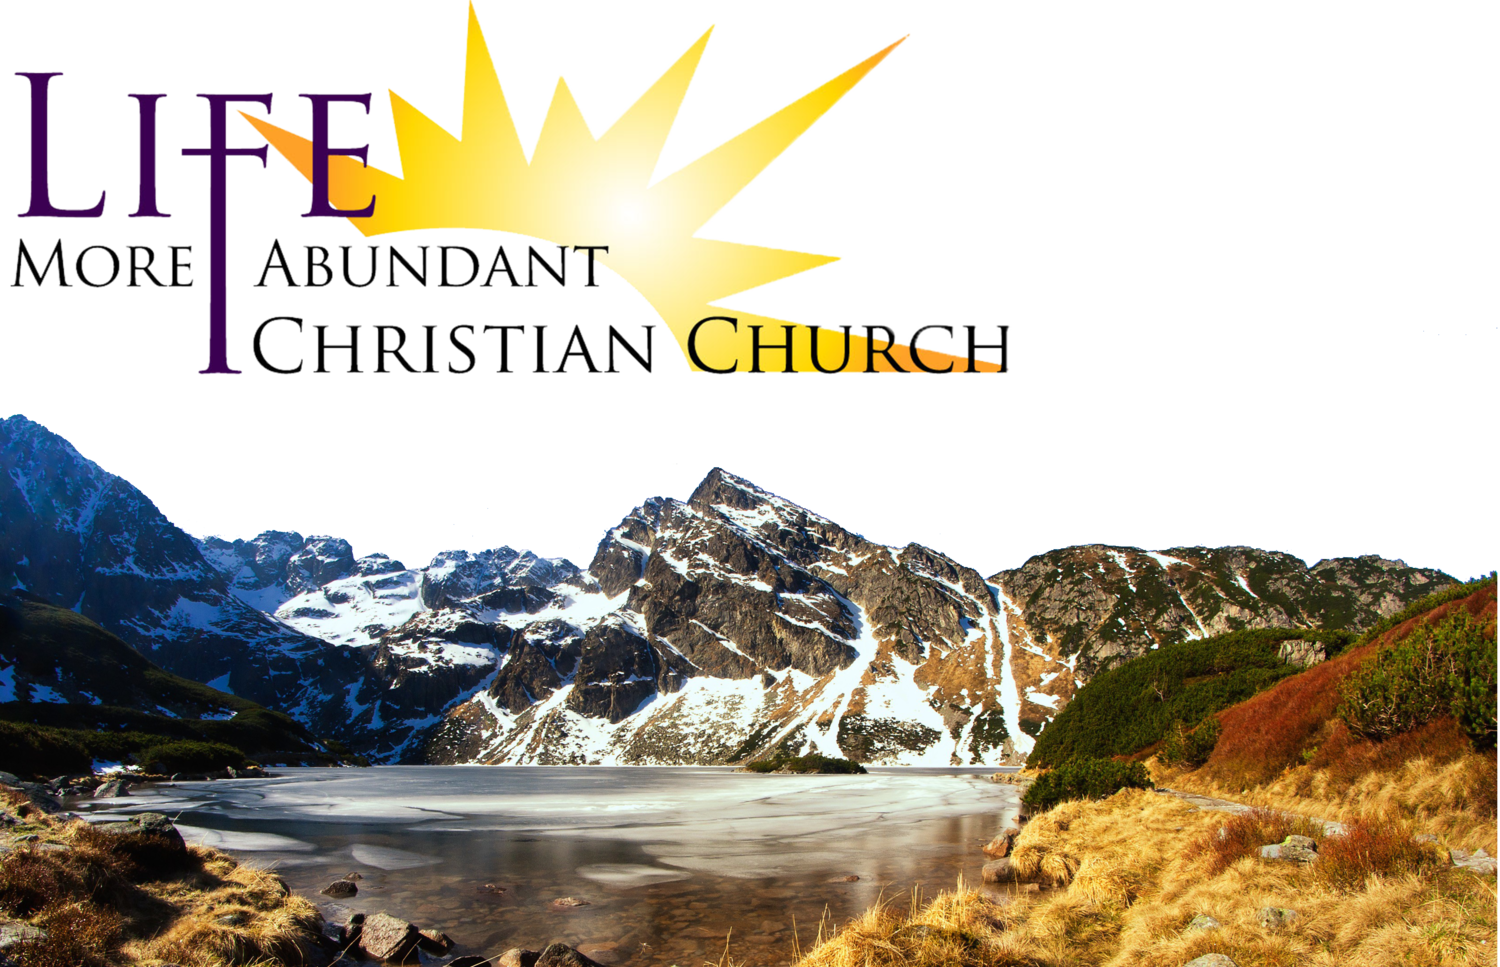 Life More Abundant Christian Church